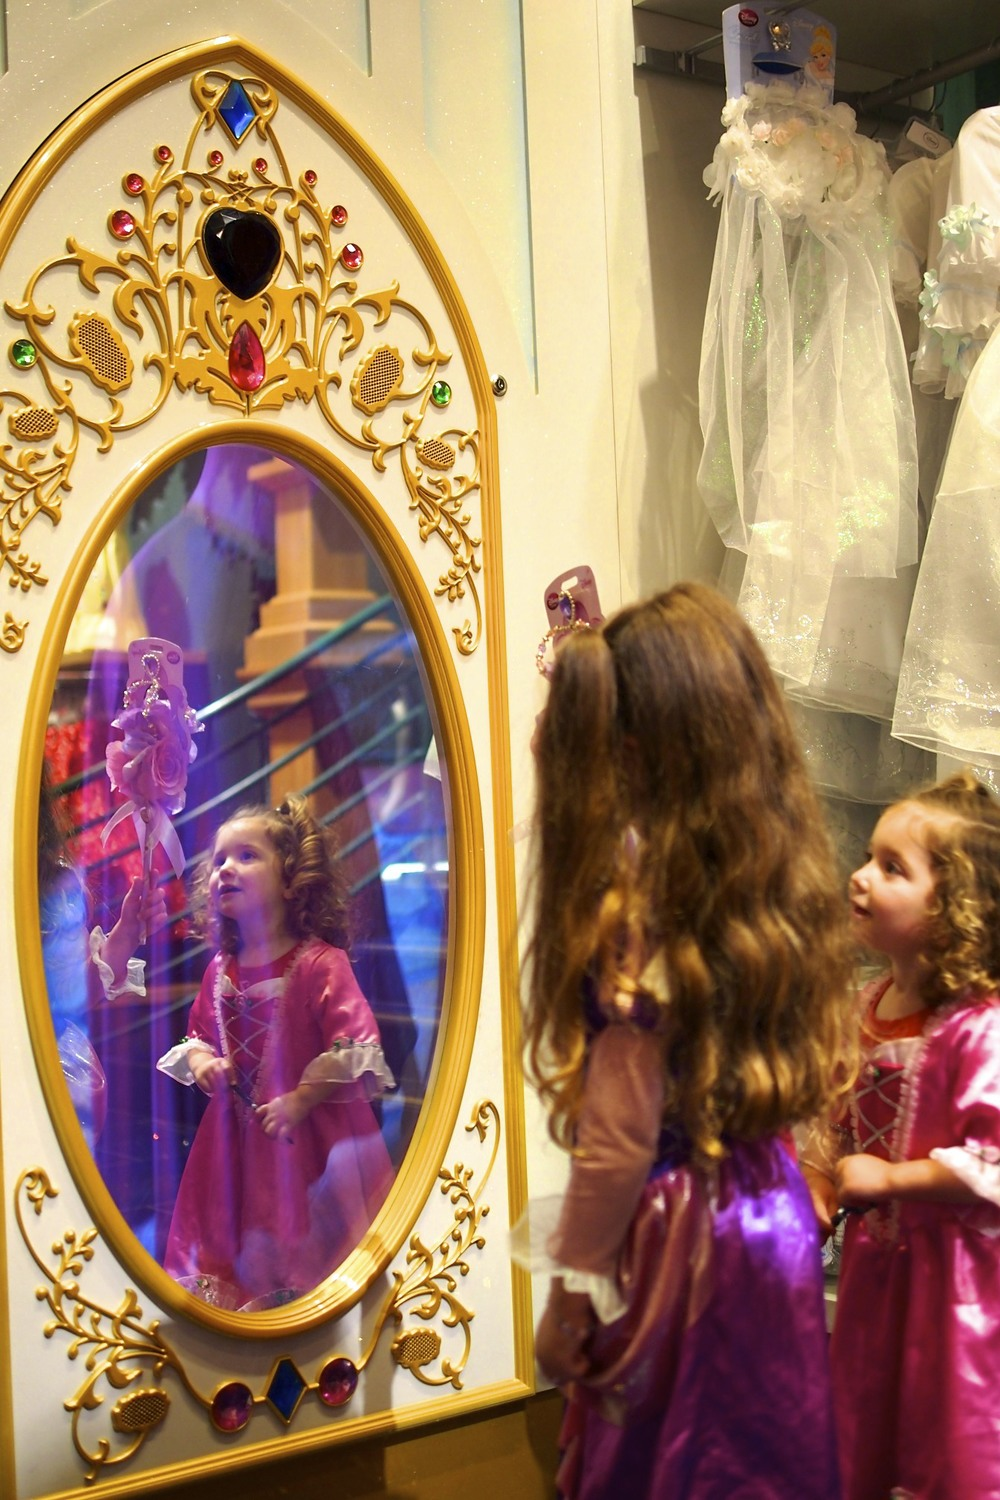 Visiting with the princesses in the magical mirror.